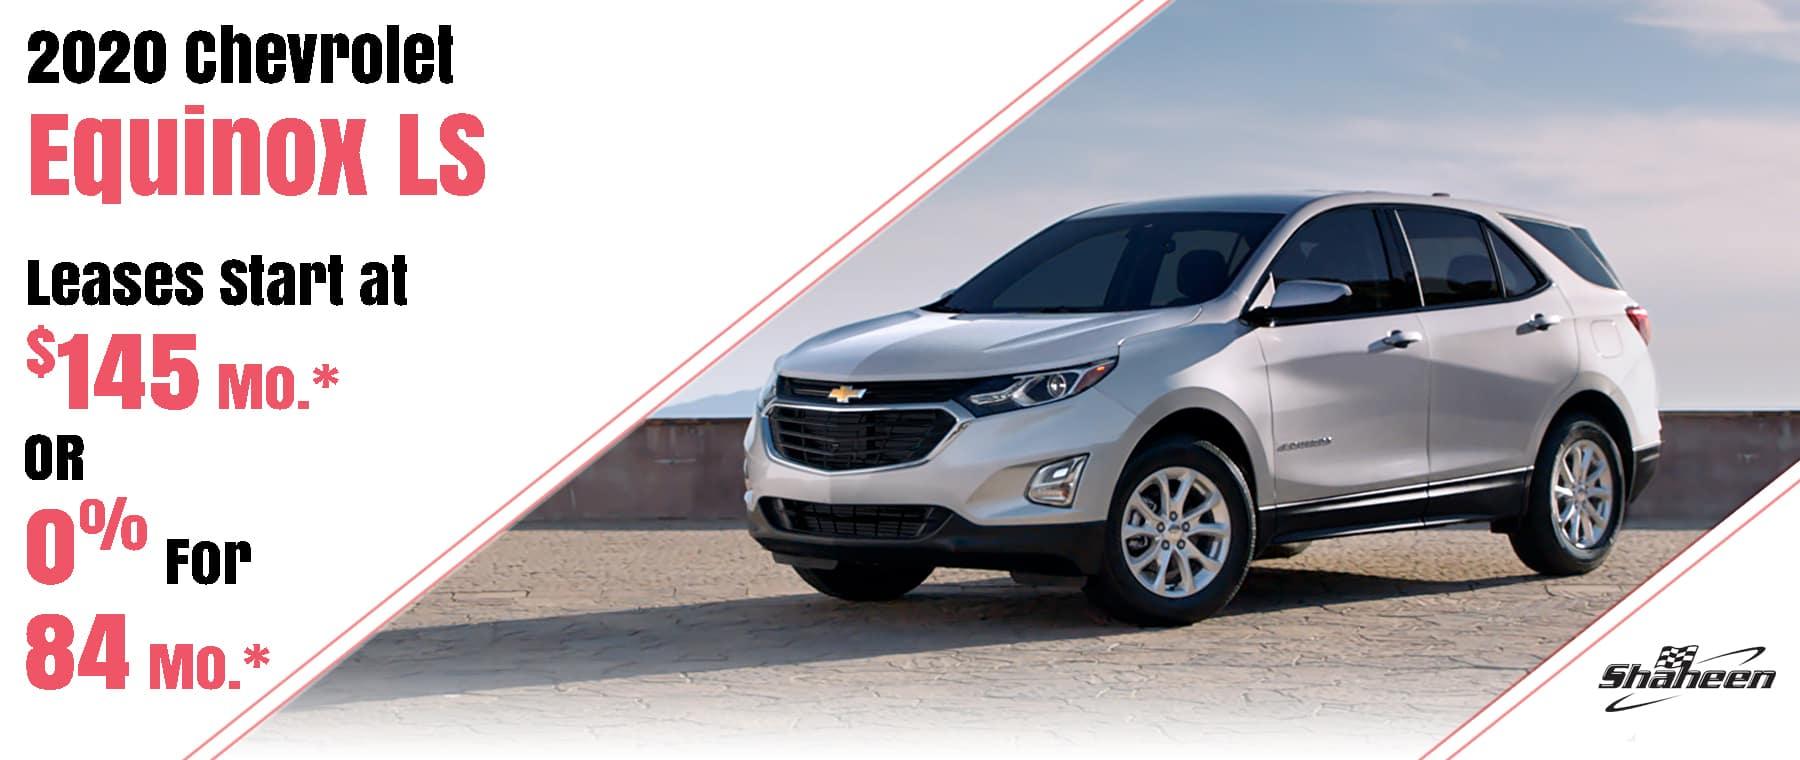 2020 Equinox Lease Offer $145